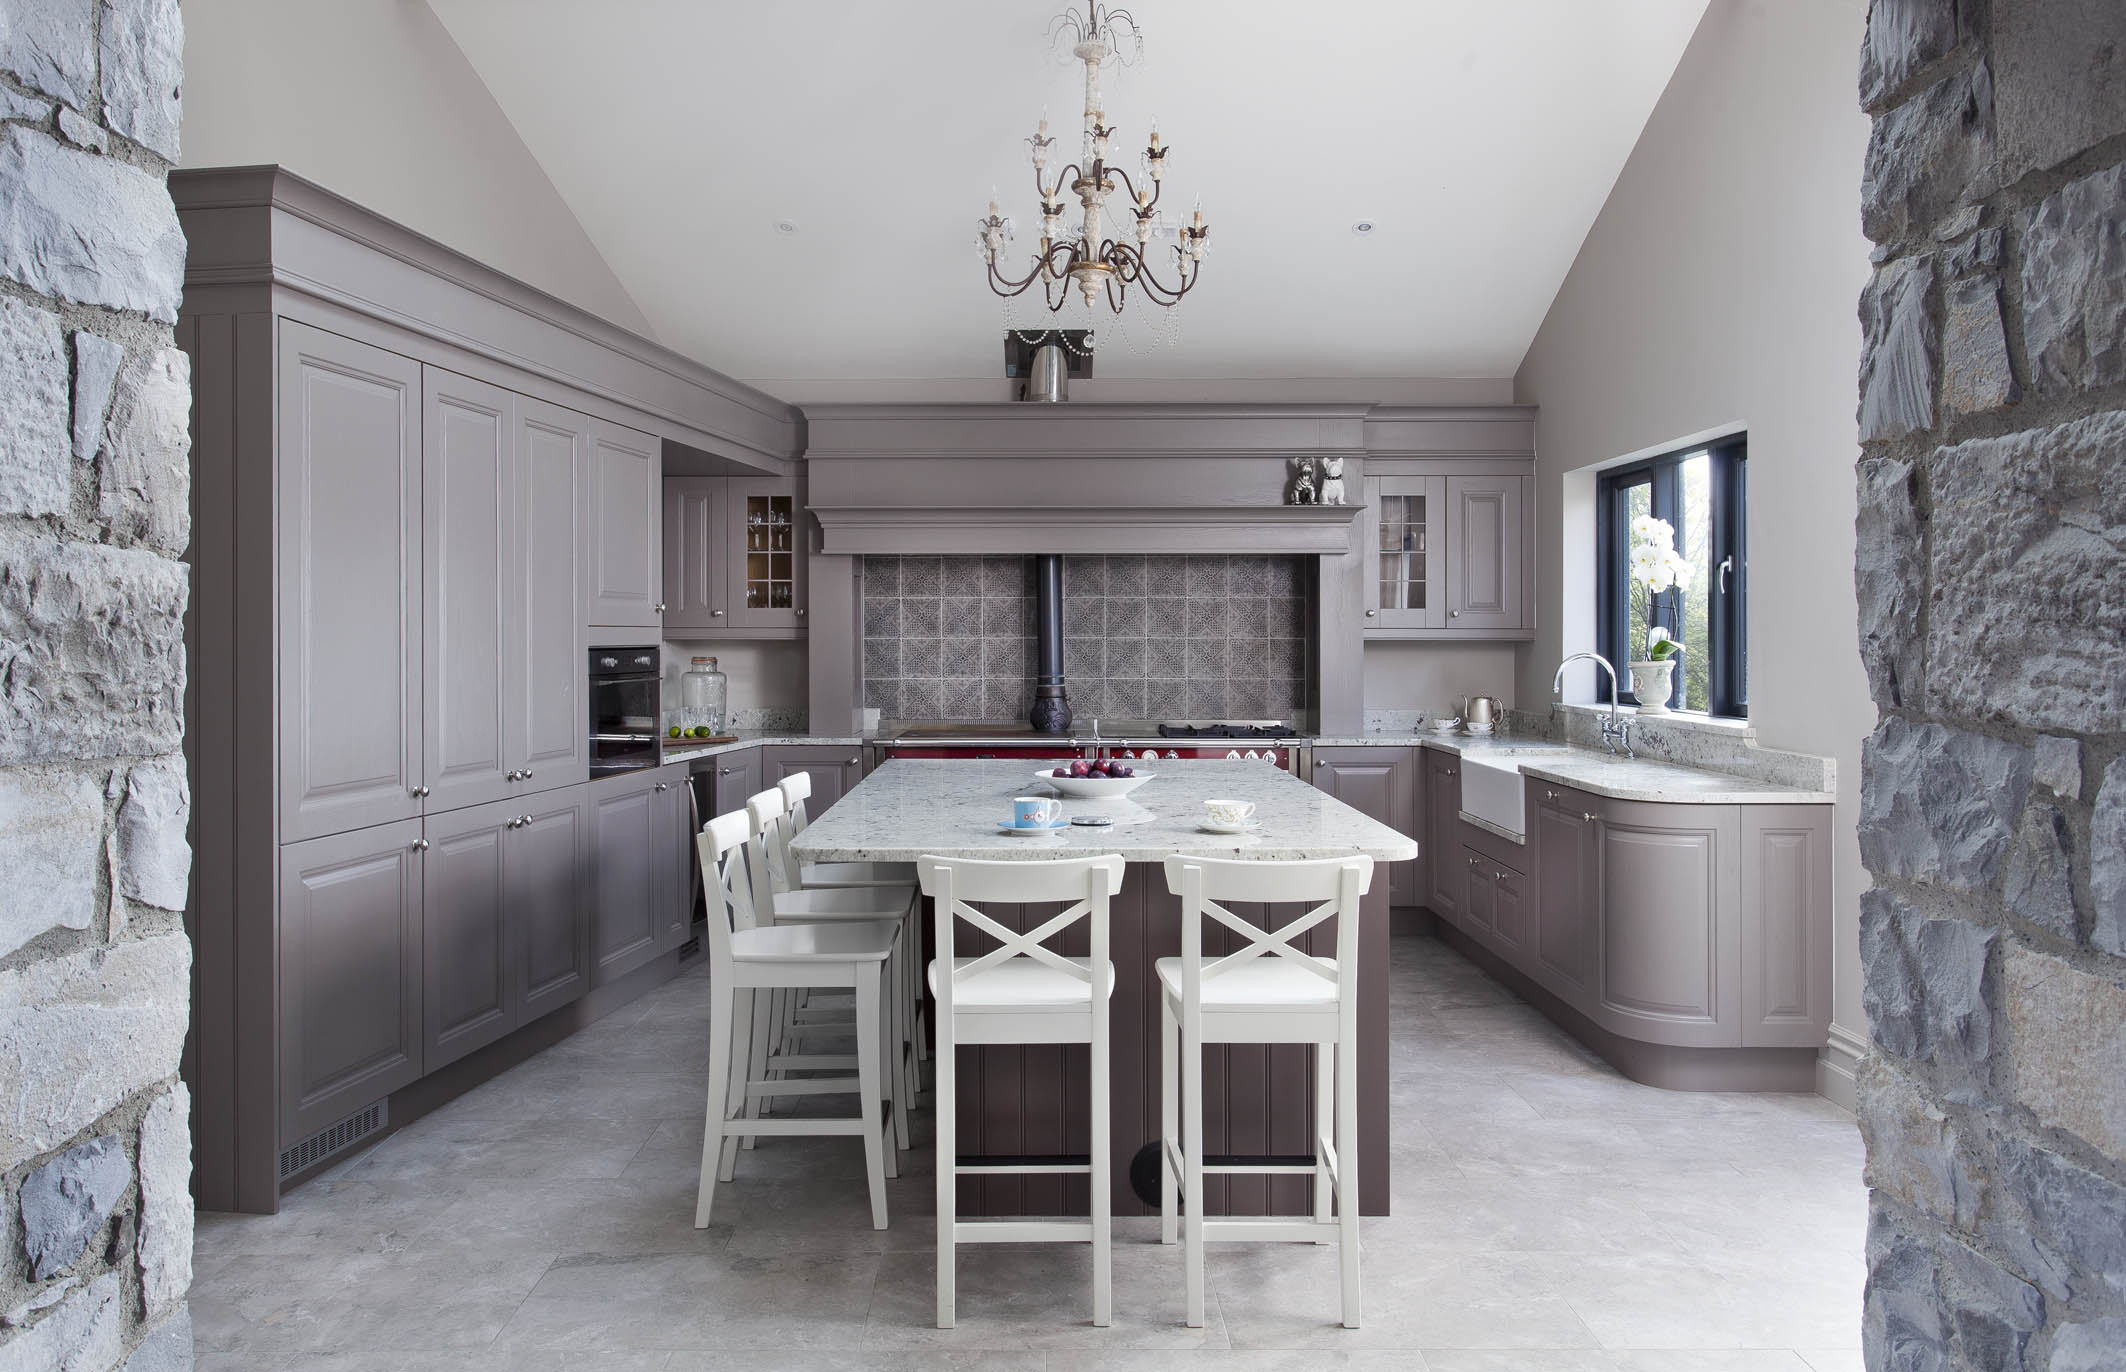 dillons kitchens irish made kitchens ashbourne meath dublin brand image for dillons kitchens interiors